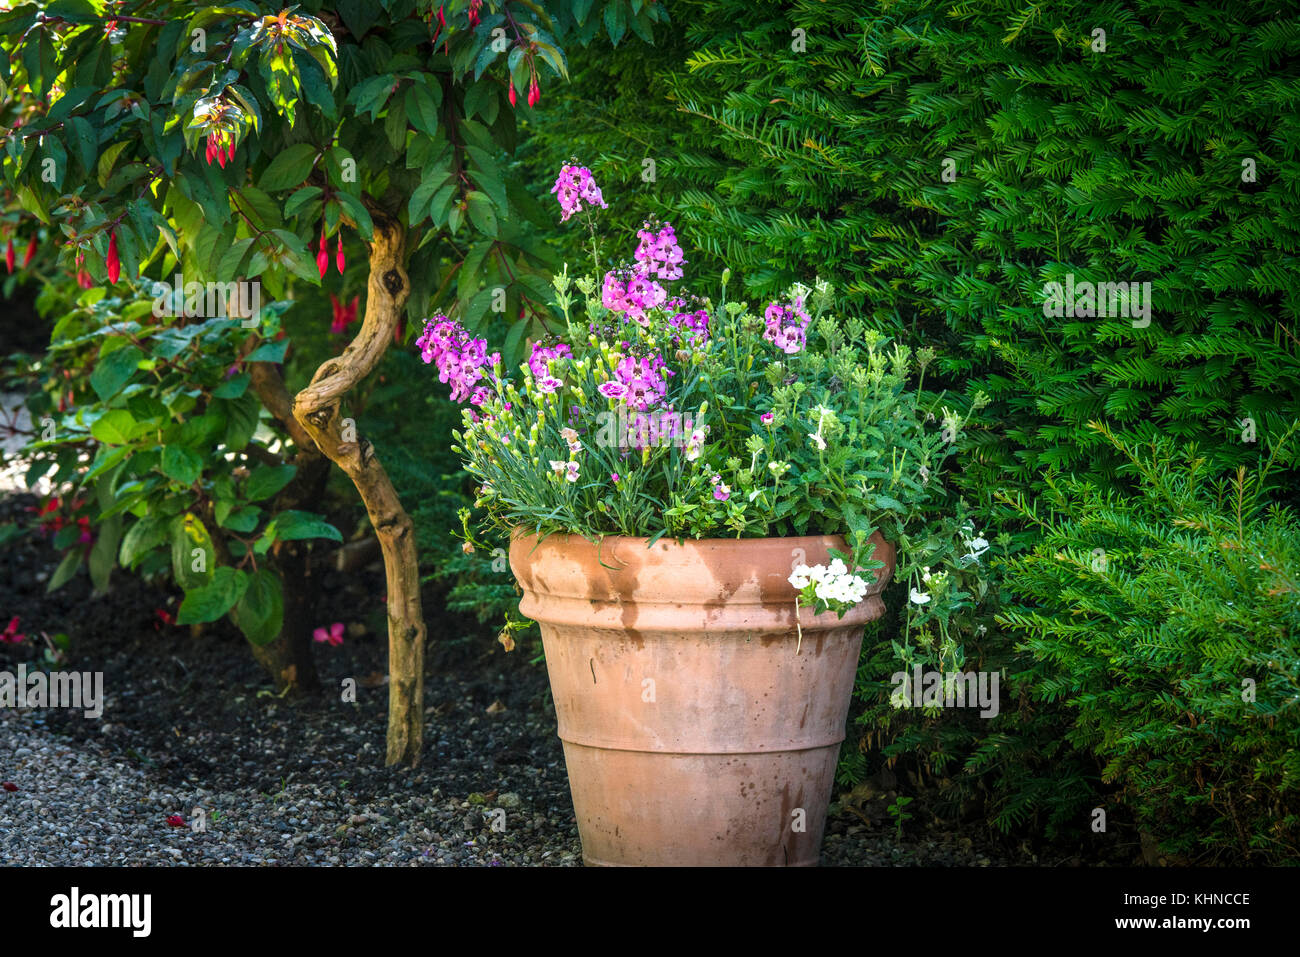 Flowers in a pot with violet flowers in a green garden in the summer - Stock Image